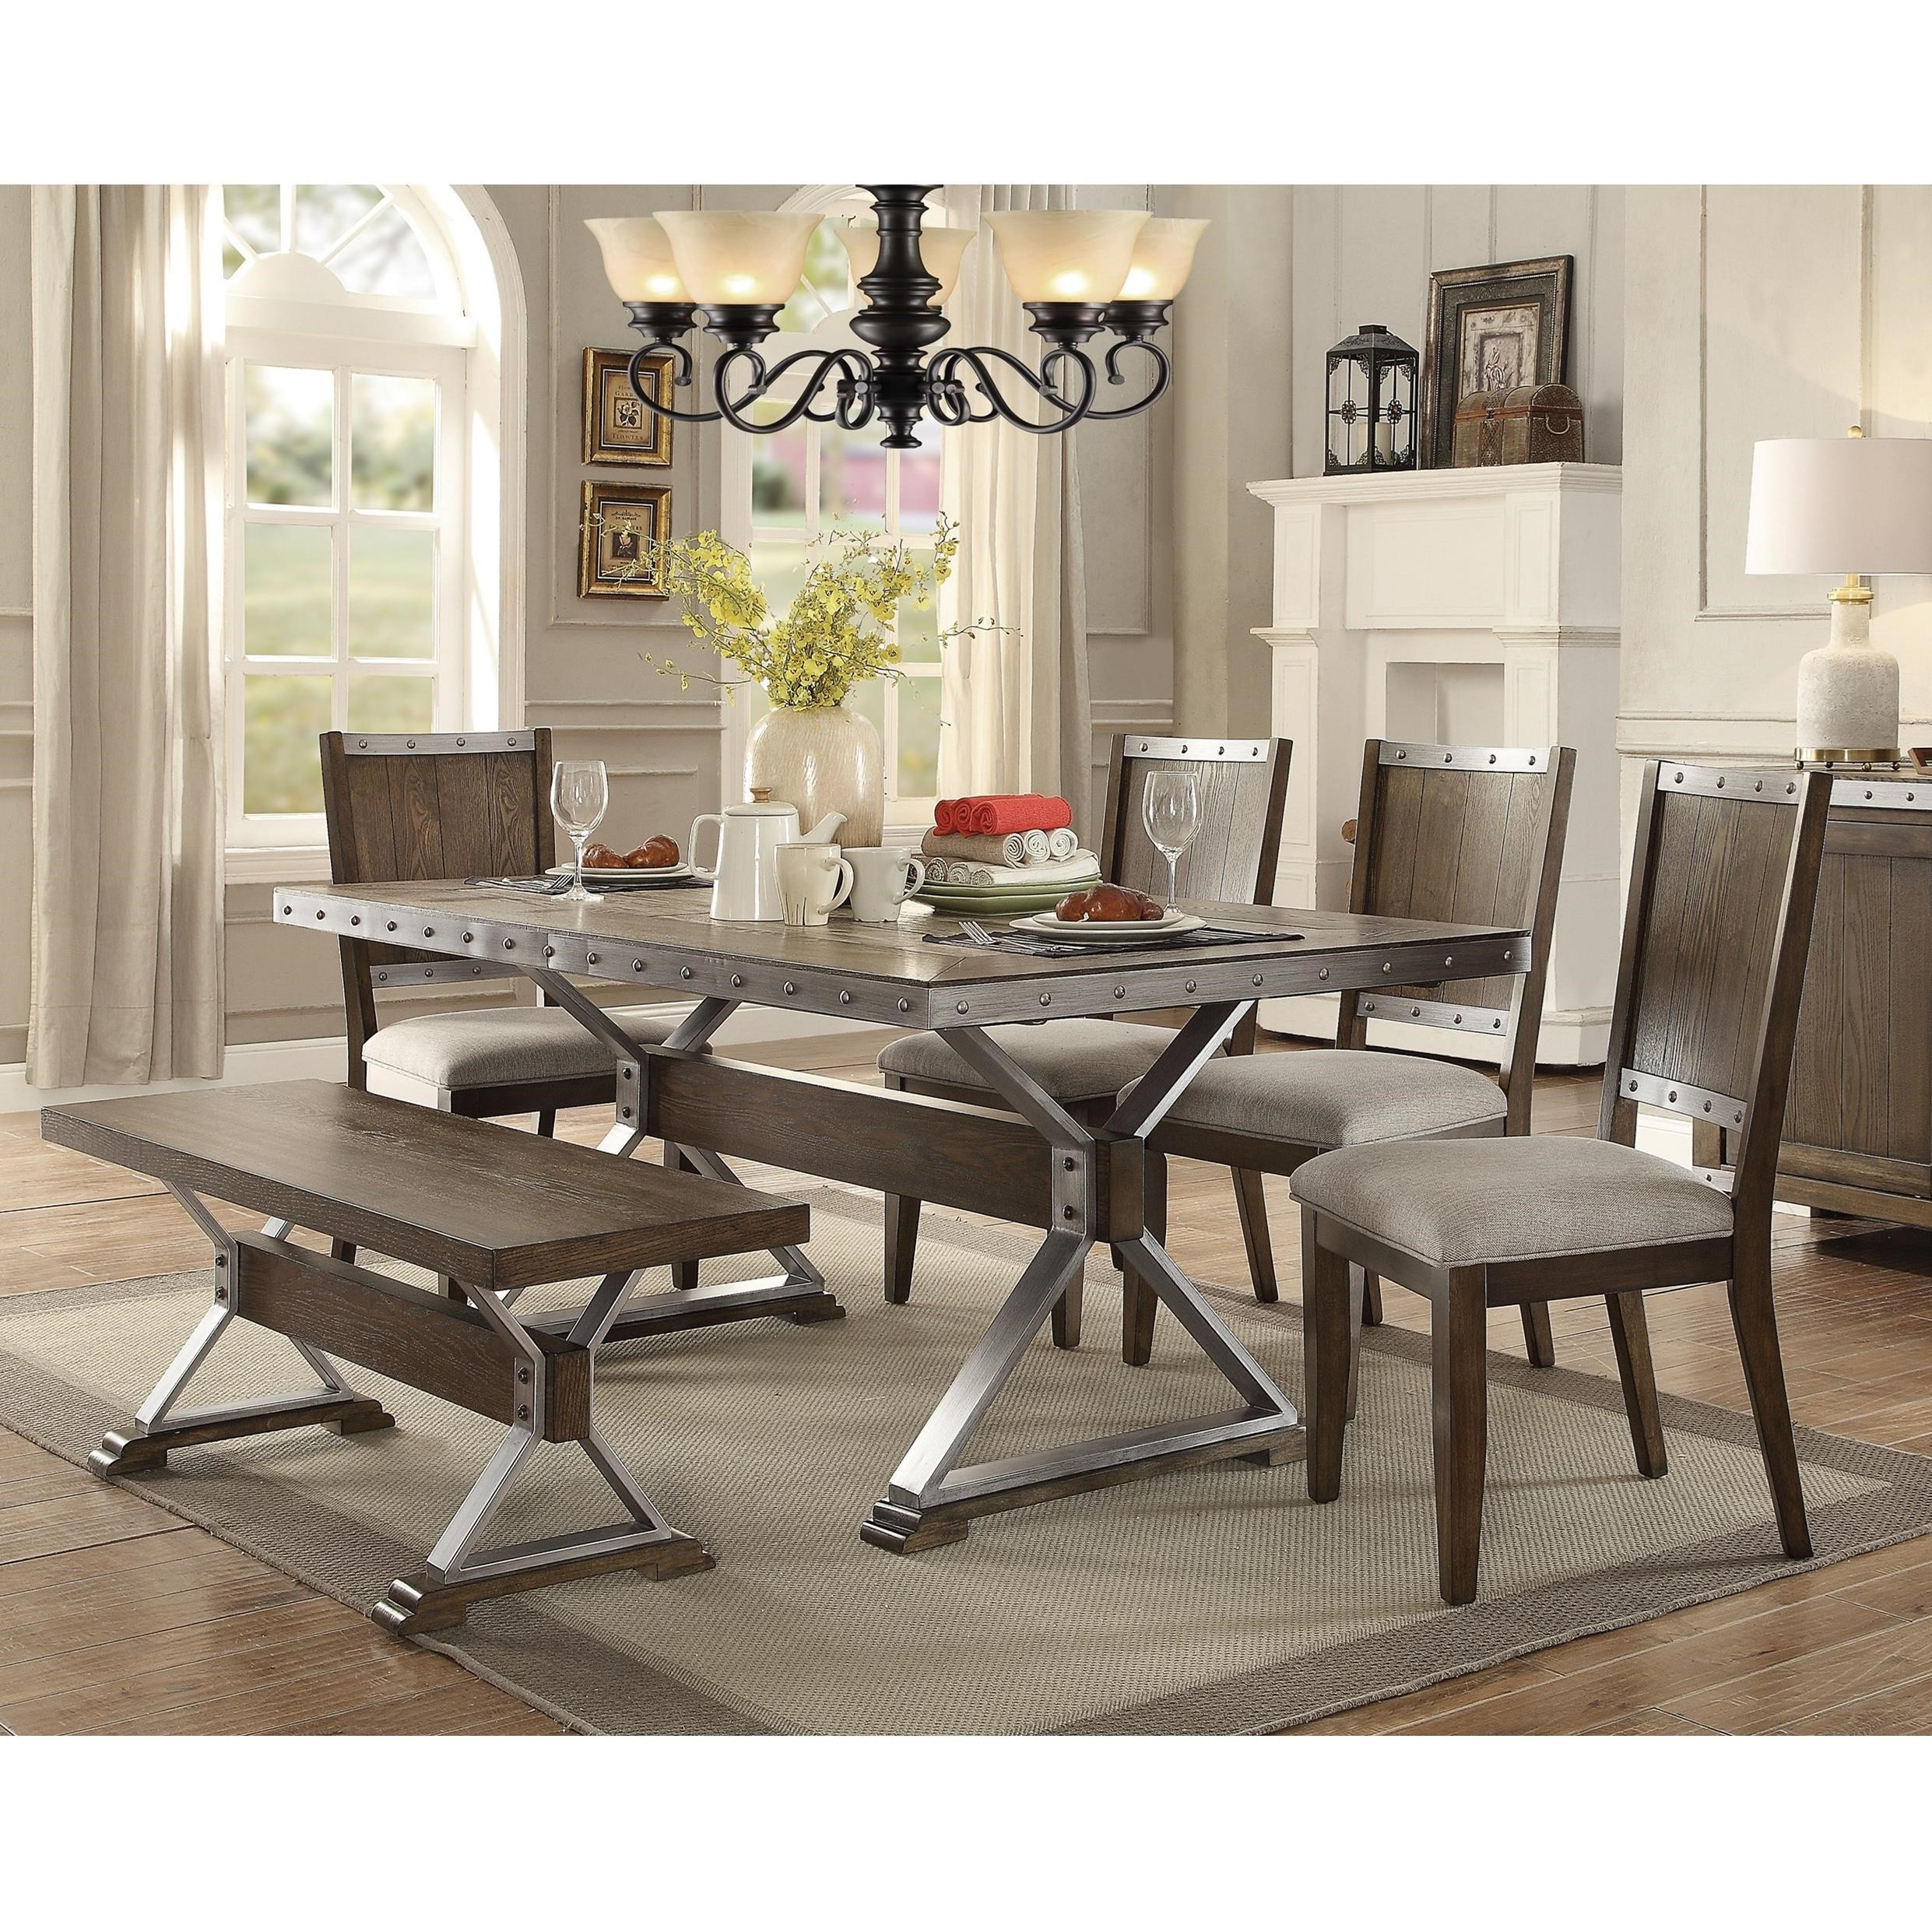 Coaster Beckett Rustic Table And Chair Set With Bench   Dunk U0026 Bright  Furniture   Table U0026 Chair Set With Bench